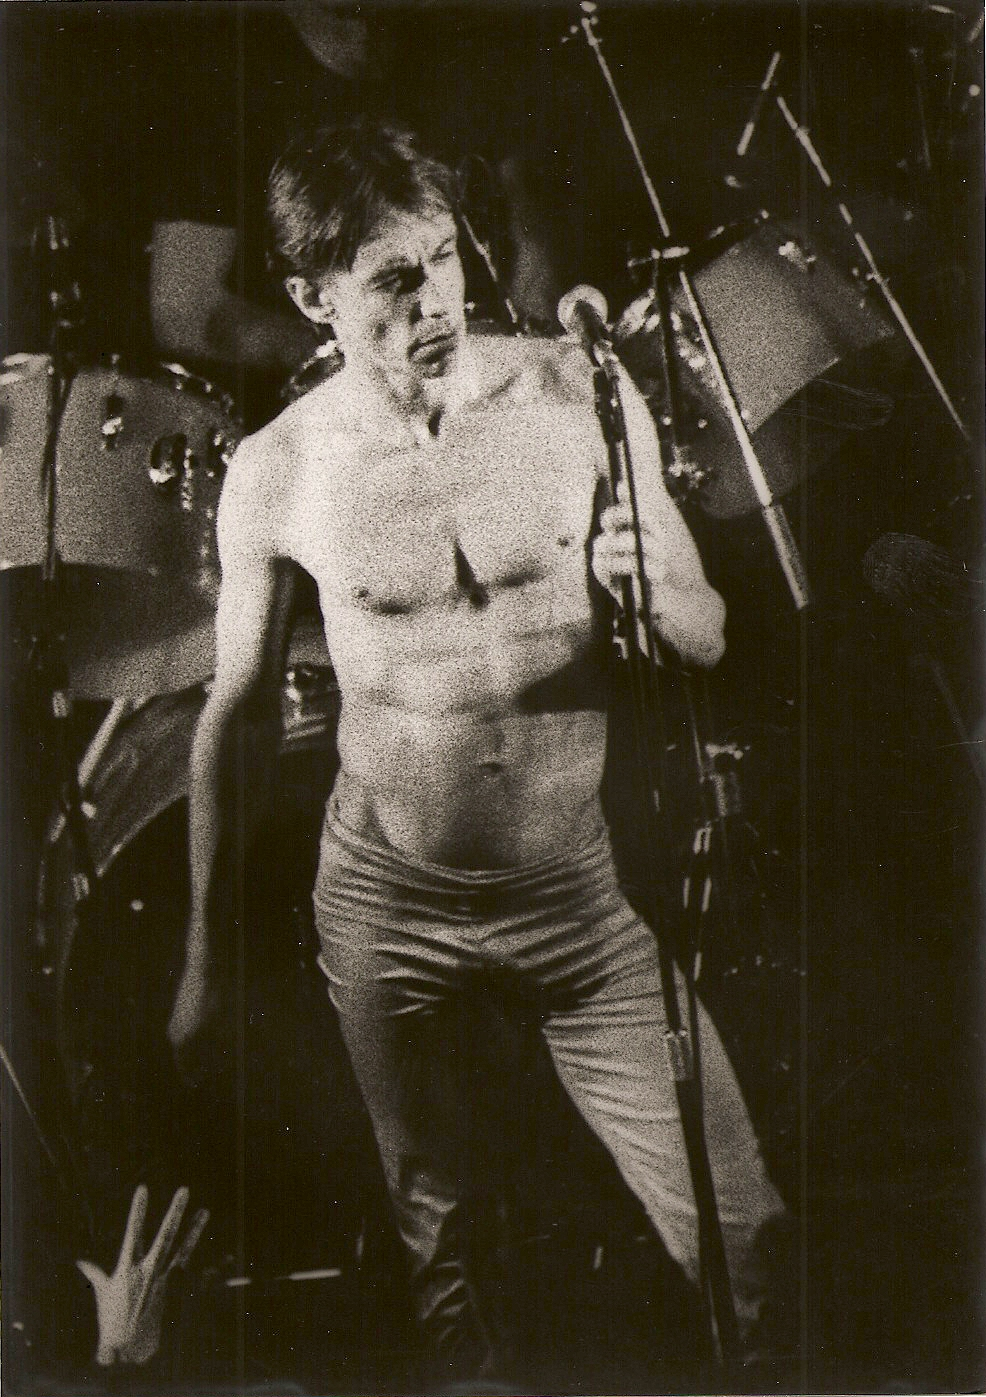 Iggy Pop - 1979 - Paris Le Palace